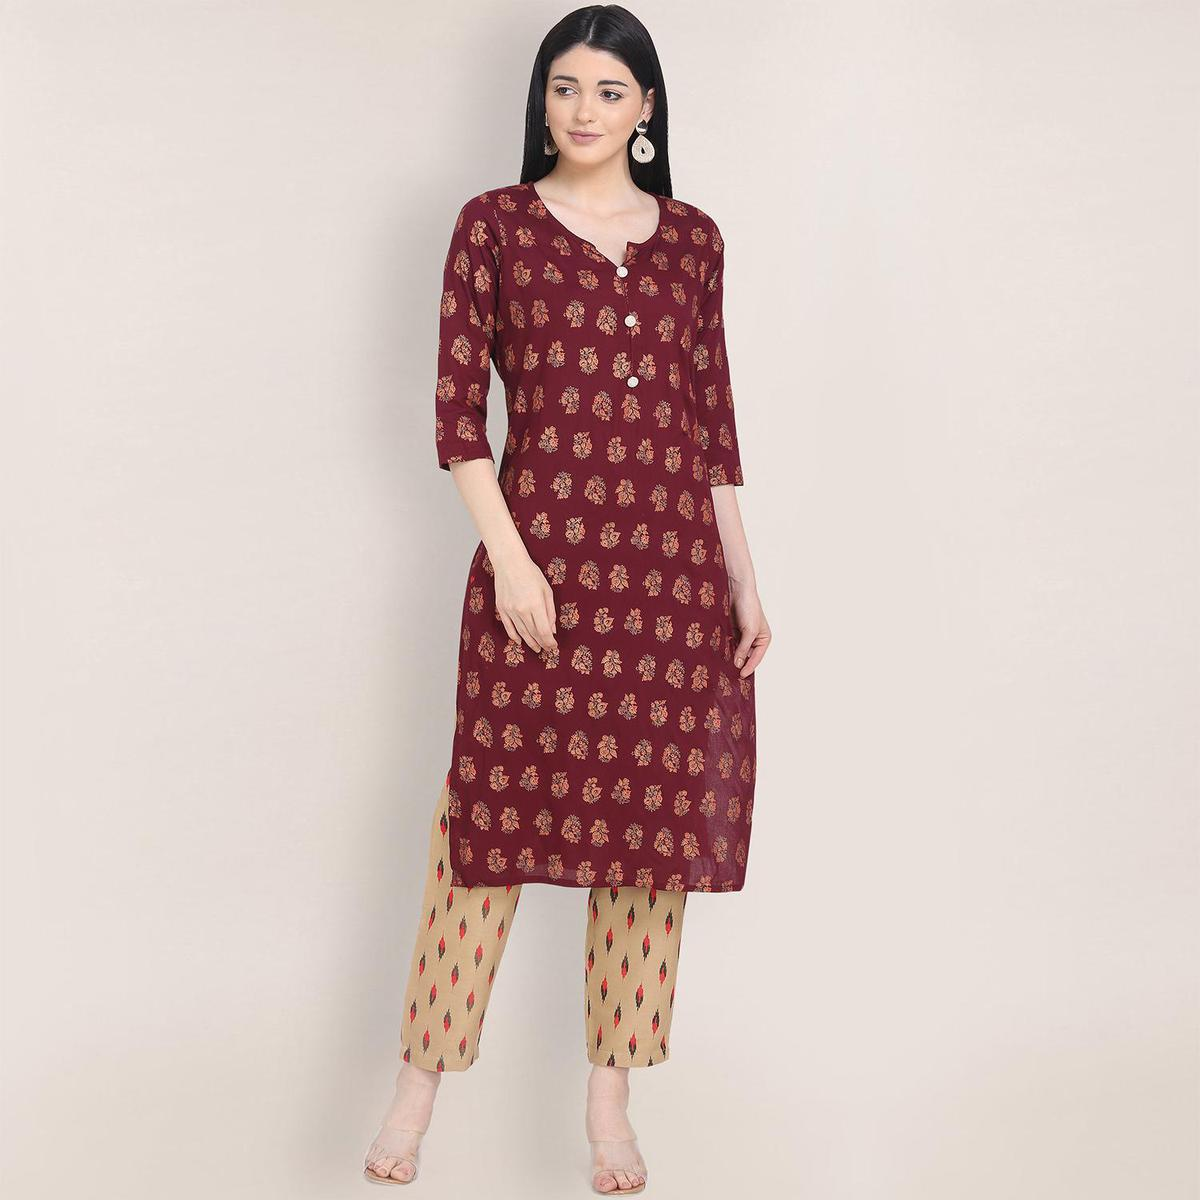 Unique Maroon Colored Casual Wear Printed Straight Calf Length Rayon Kurti-Pant Set